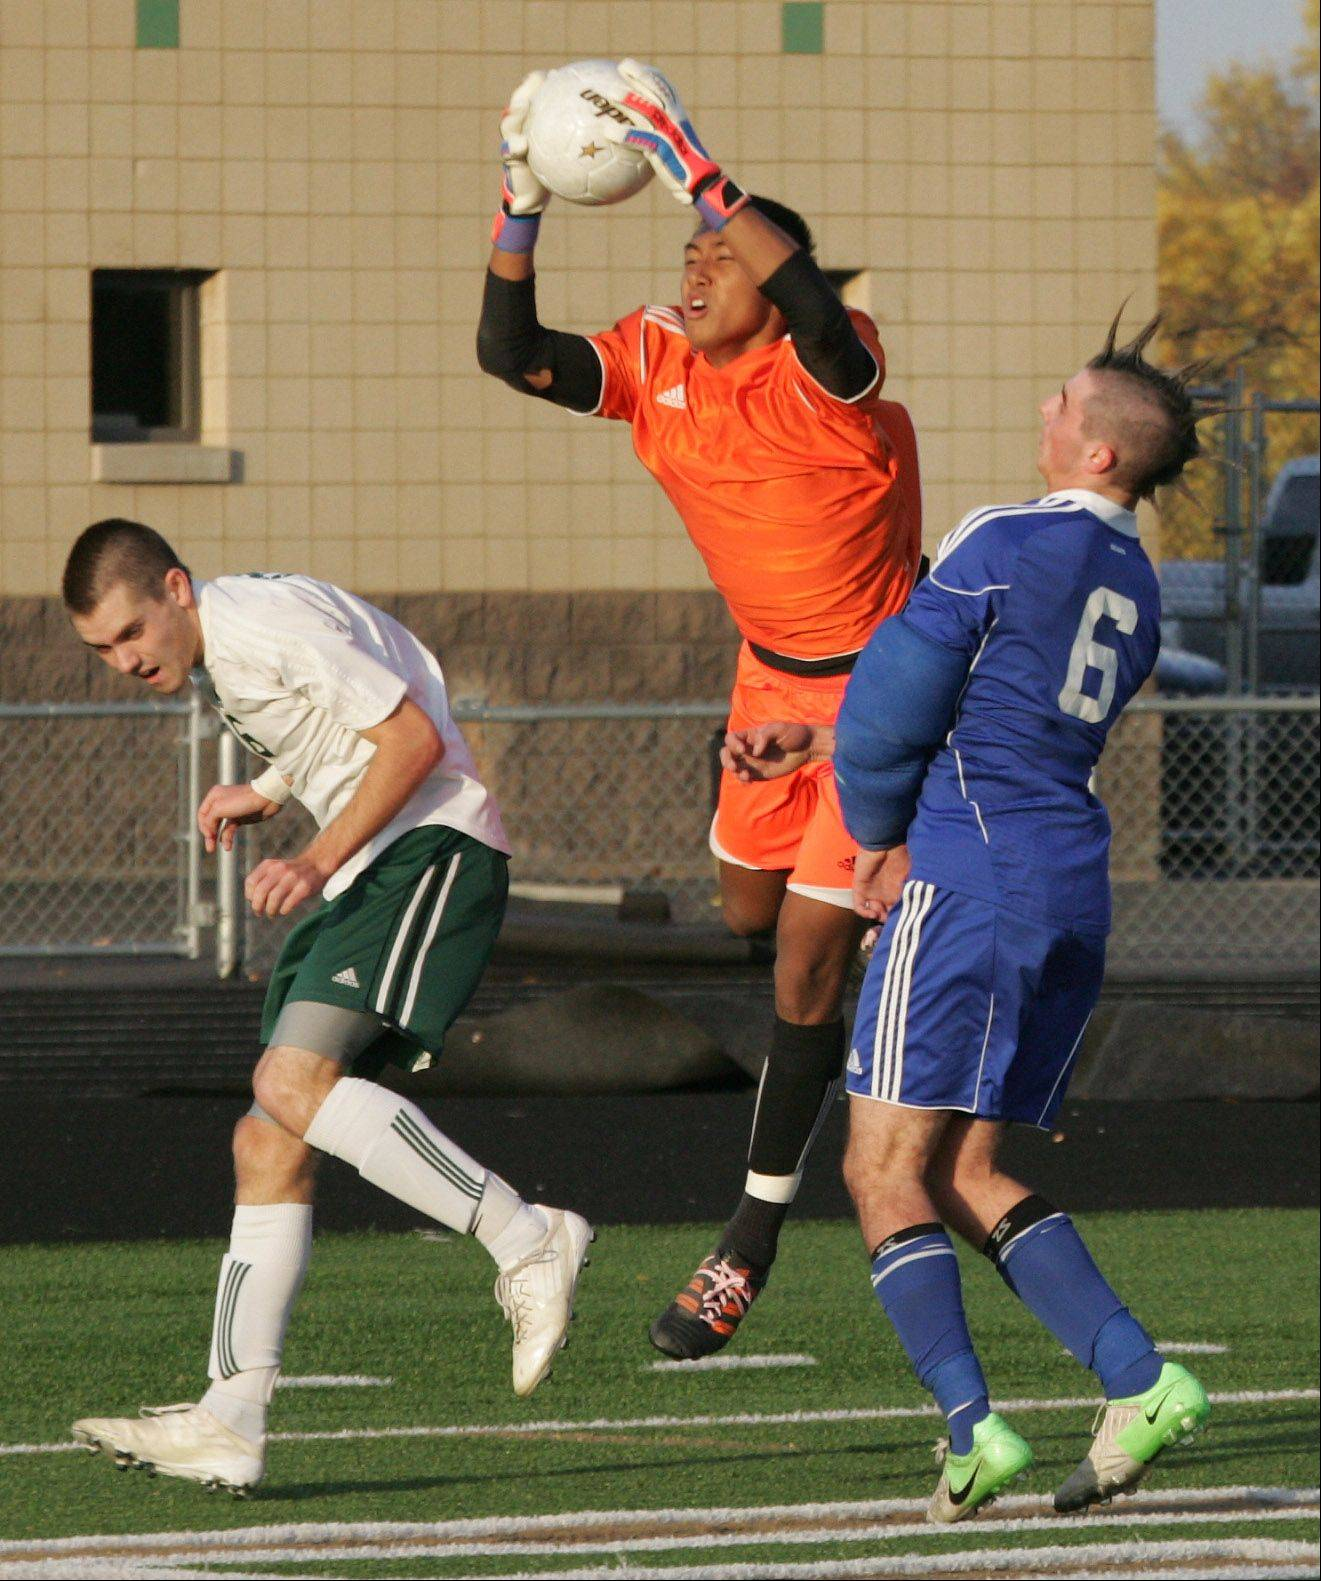 Stevenson goalie Quentin Low grabs the ball between Stevenson defender Alex Smith and Lake Zurich forward John Repplinger during Class 3A regional semifinal play Tuesday in Lincolnshire.